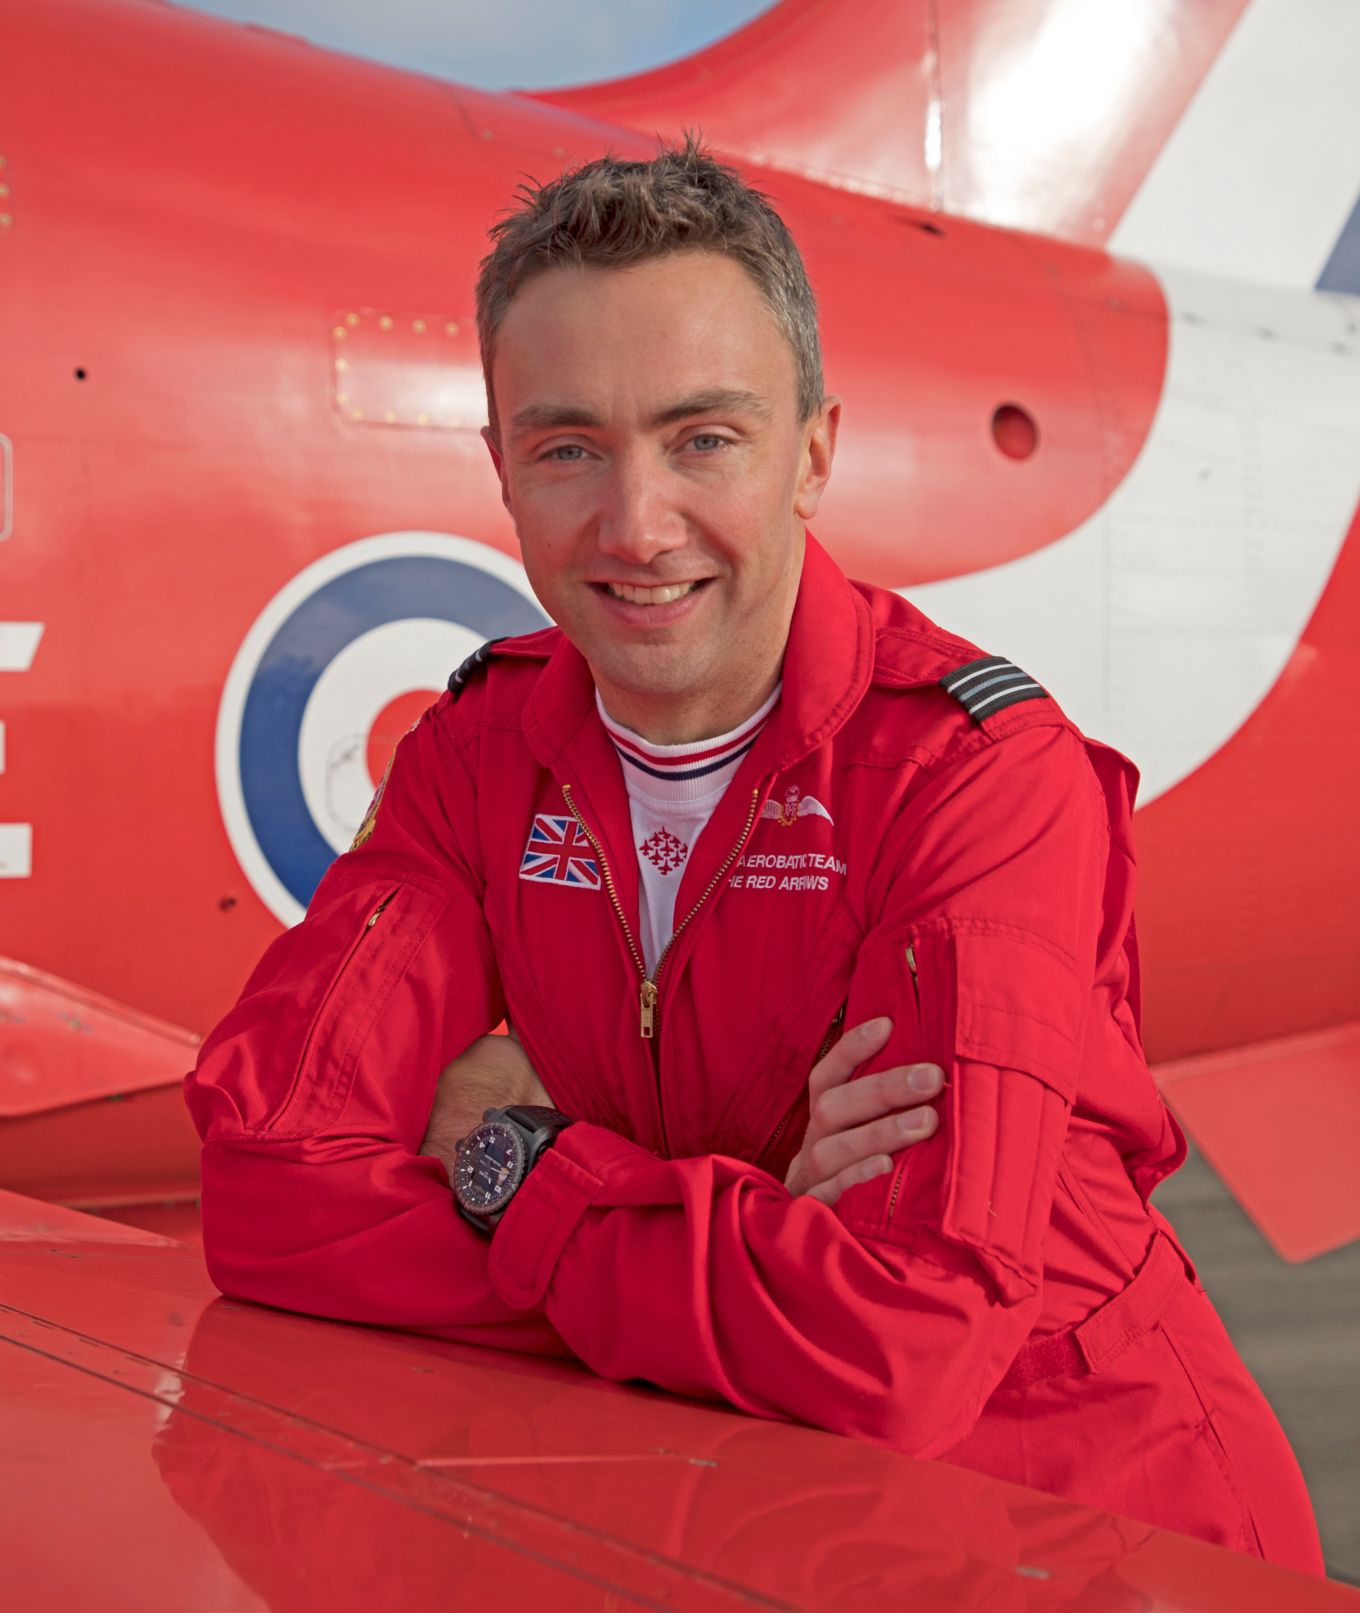 Red 3 for 2020 is Flight Lieutenant Nick Critchell.